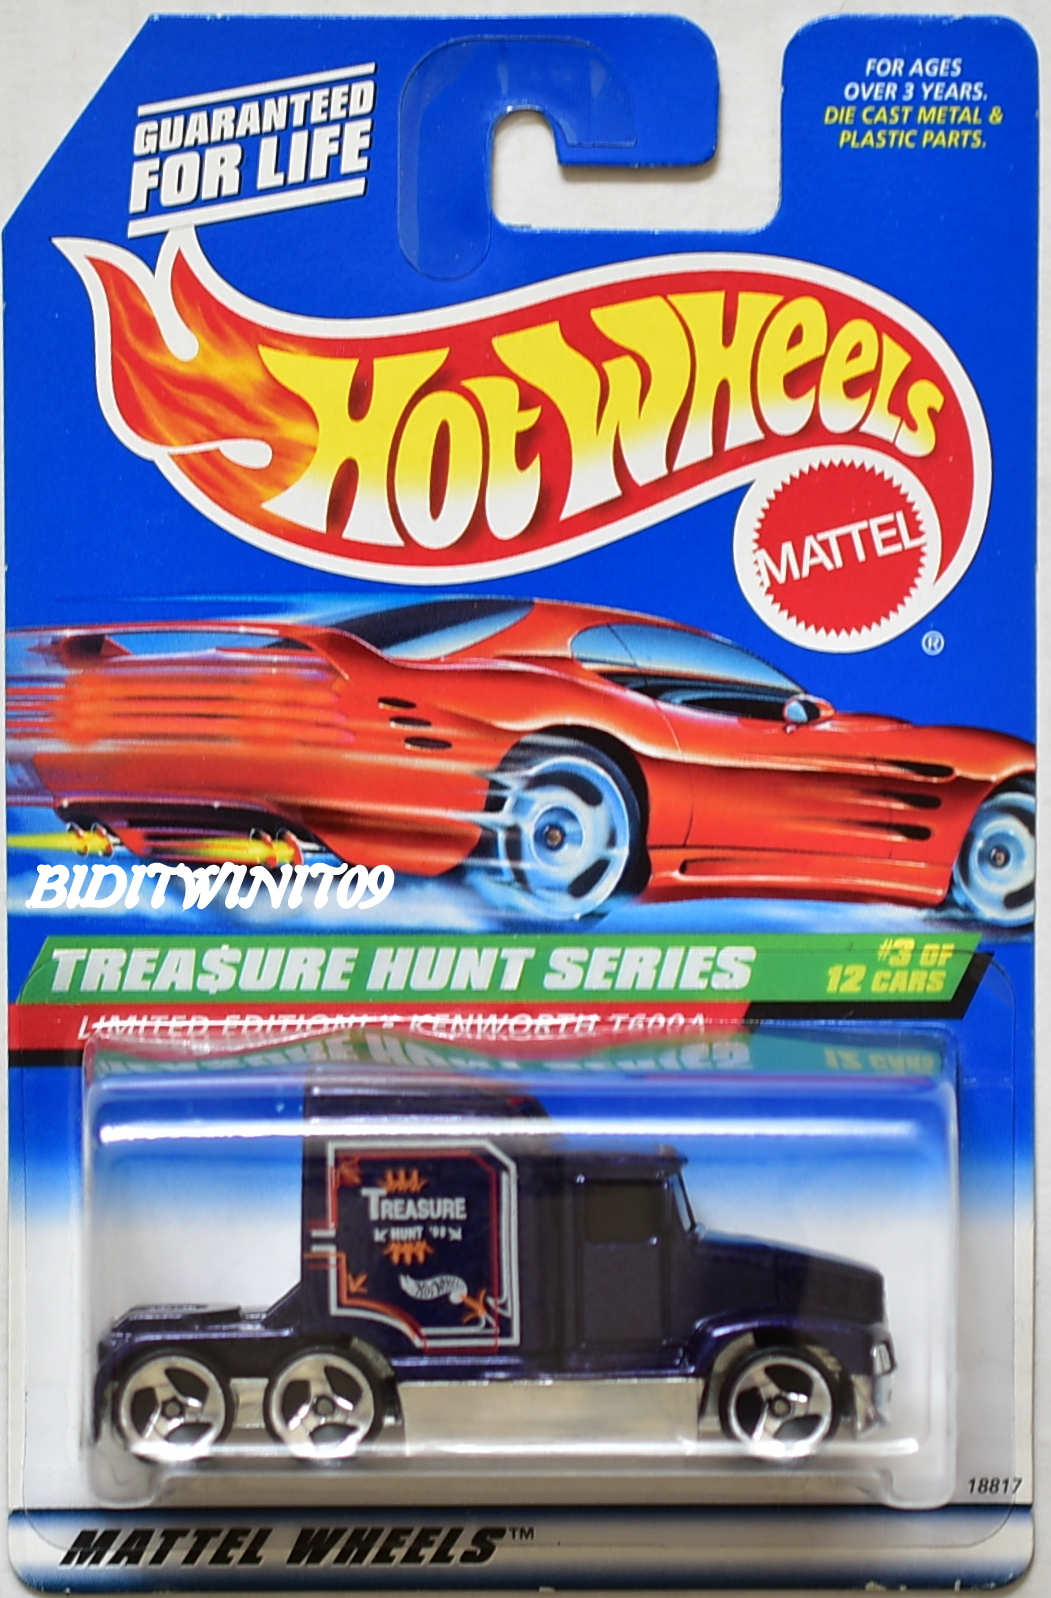 HOT WHEELS 1998 TREASURE HUNT SERIES KENWORTH T600A